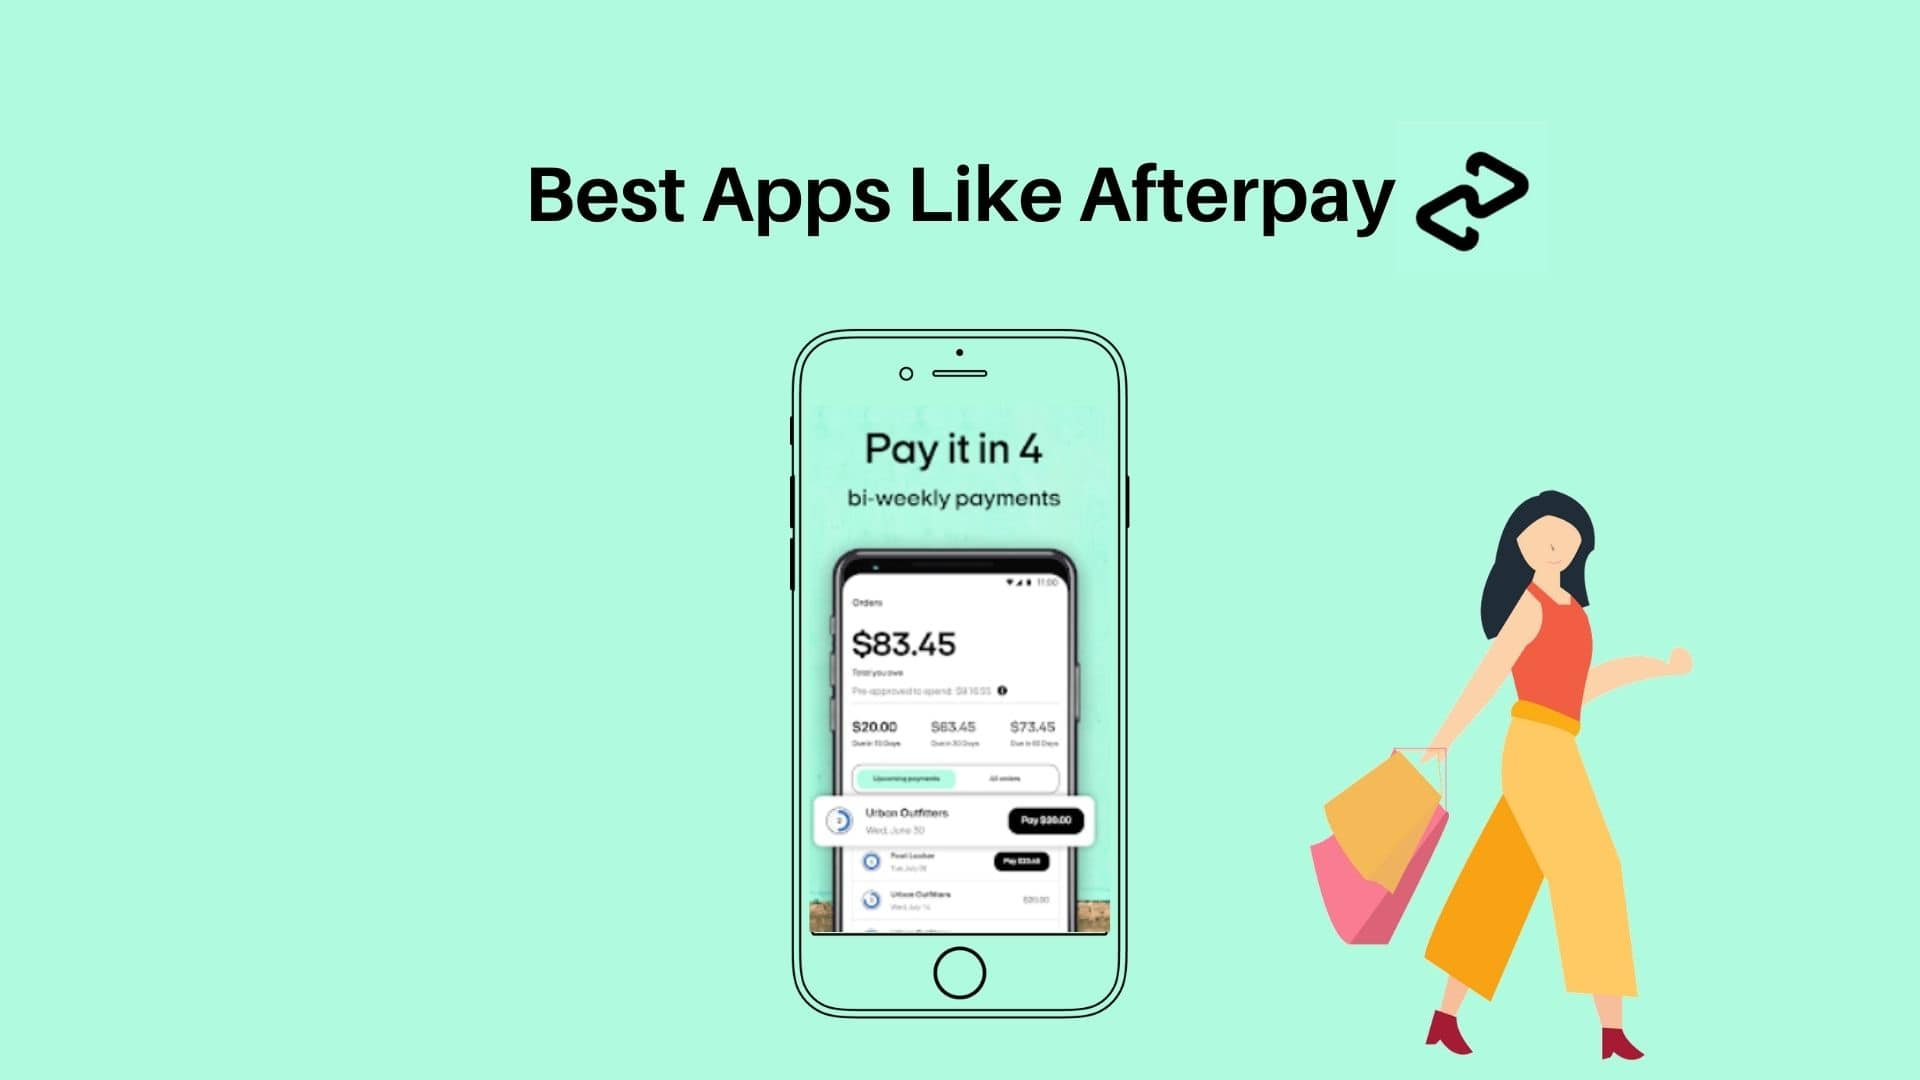 apps like Afterpay